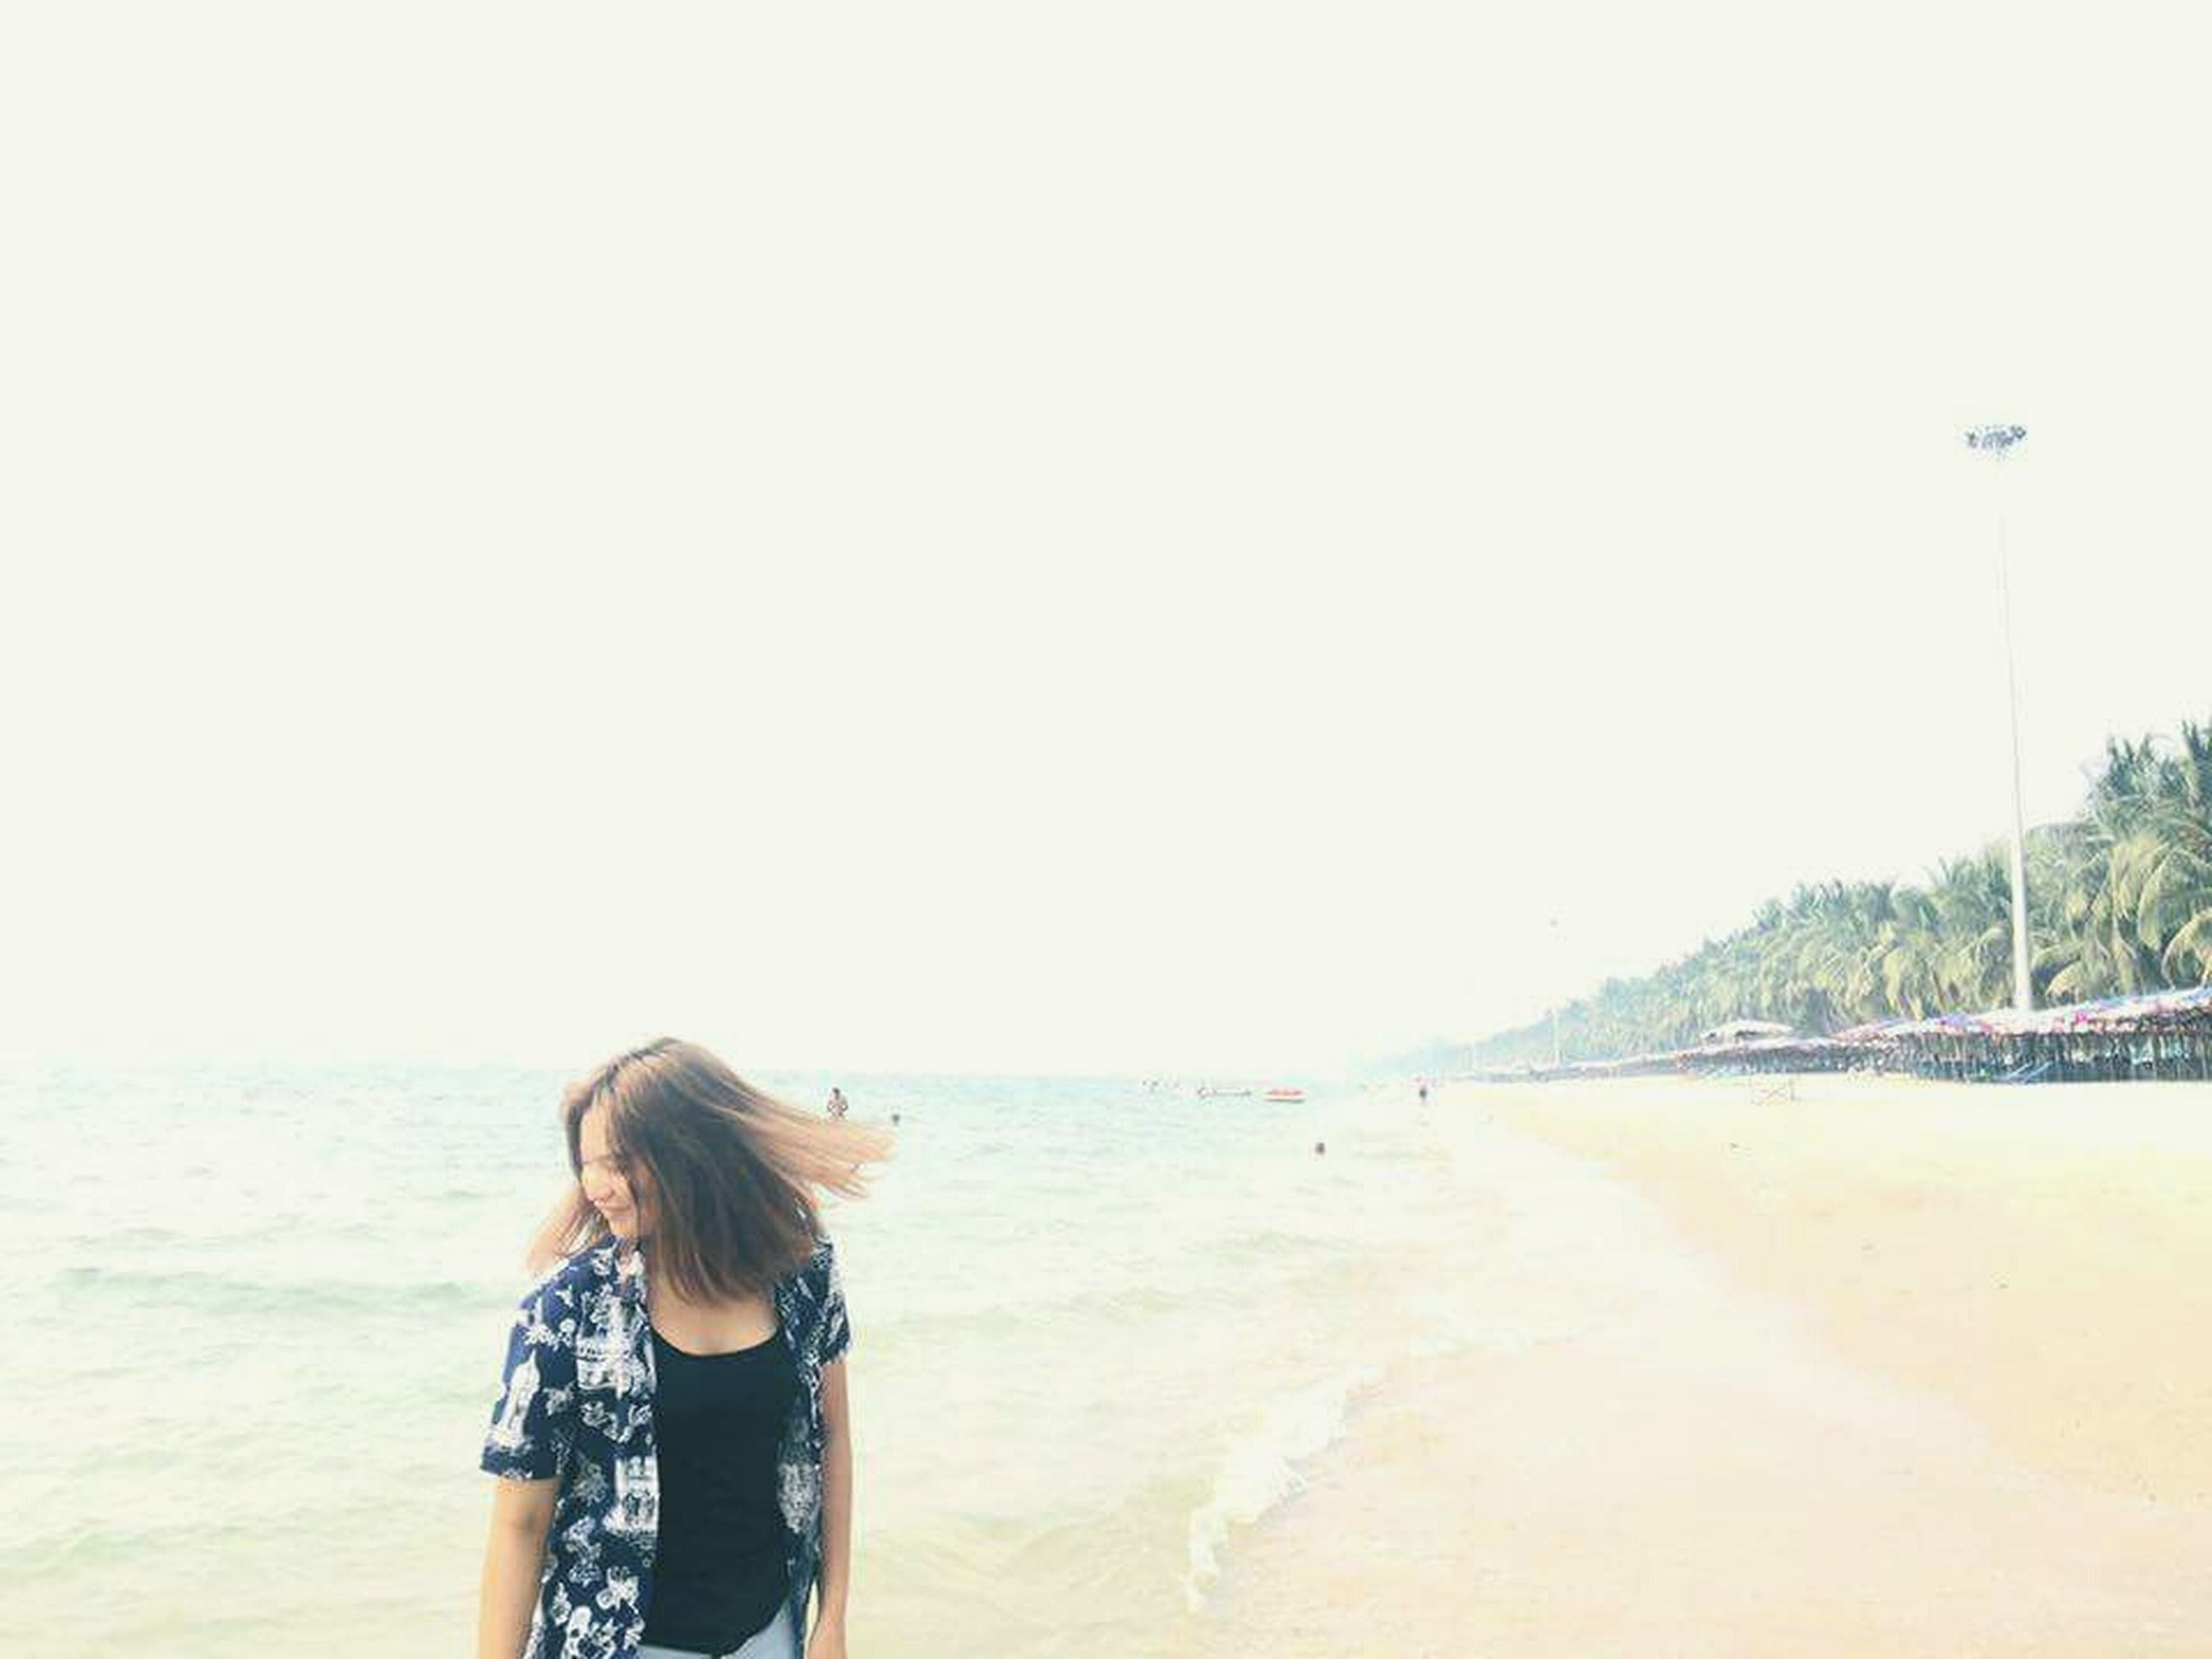 beach, sea, lifestyles, water, clear sky, leisure activity, sand, shore, copy space, horizon over water, rear view, vacations, standing, nature, casual clothing, person, tranquility, beauty in nature